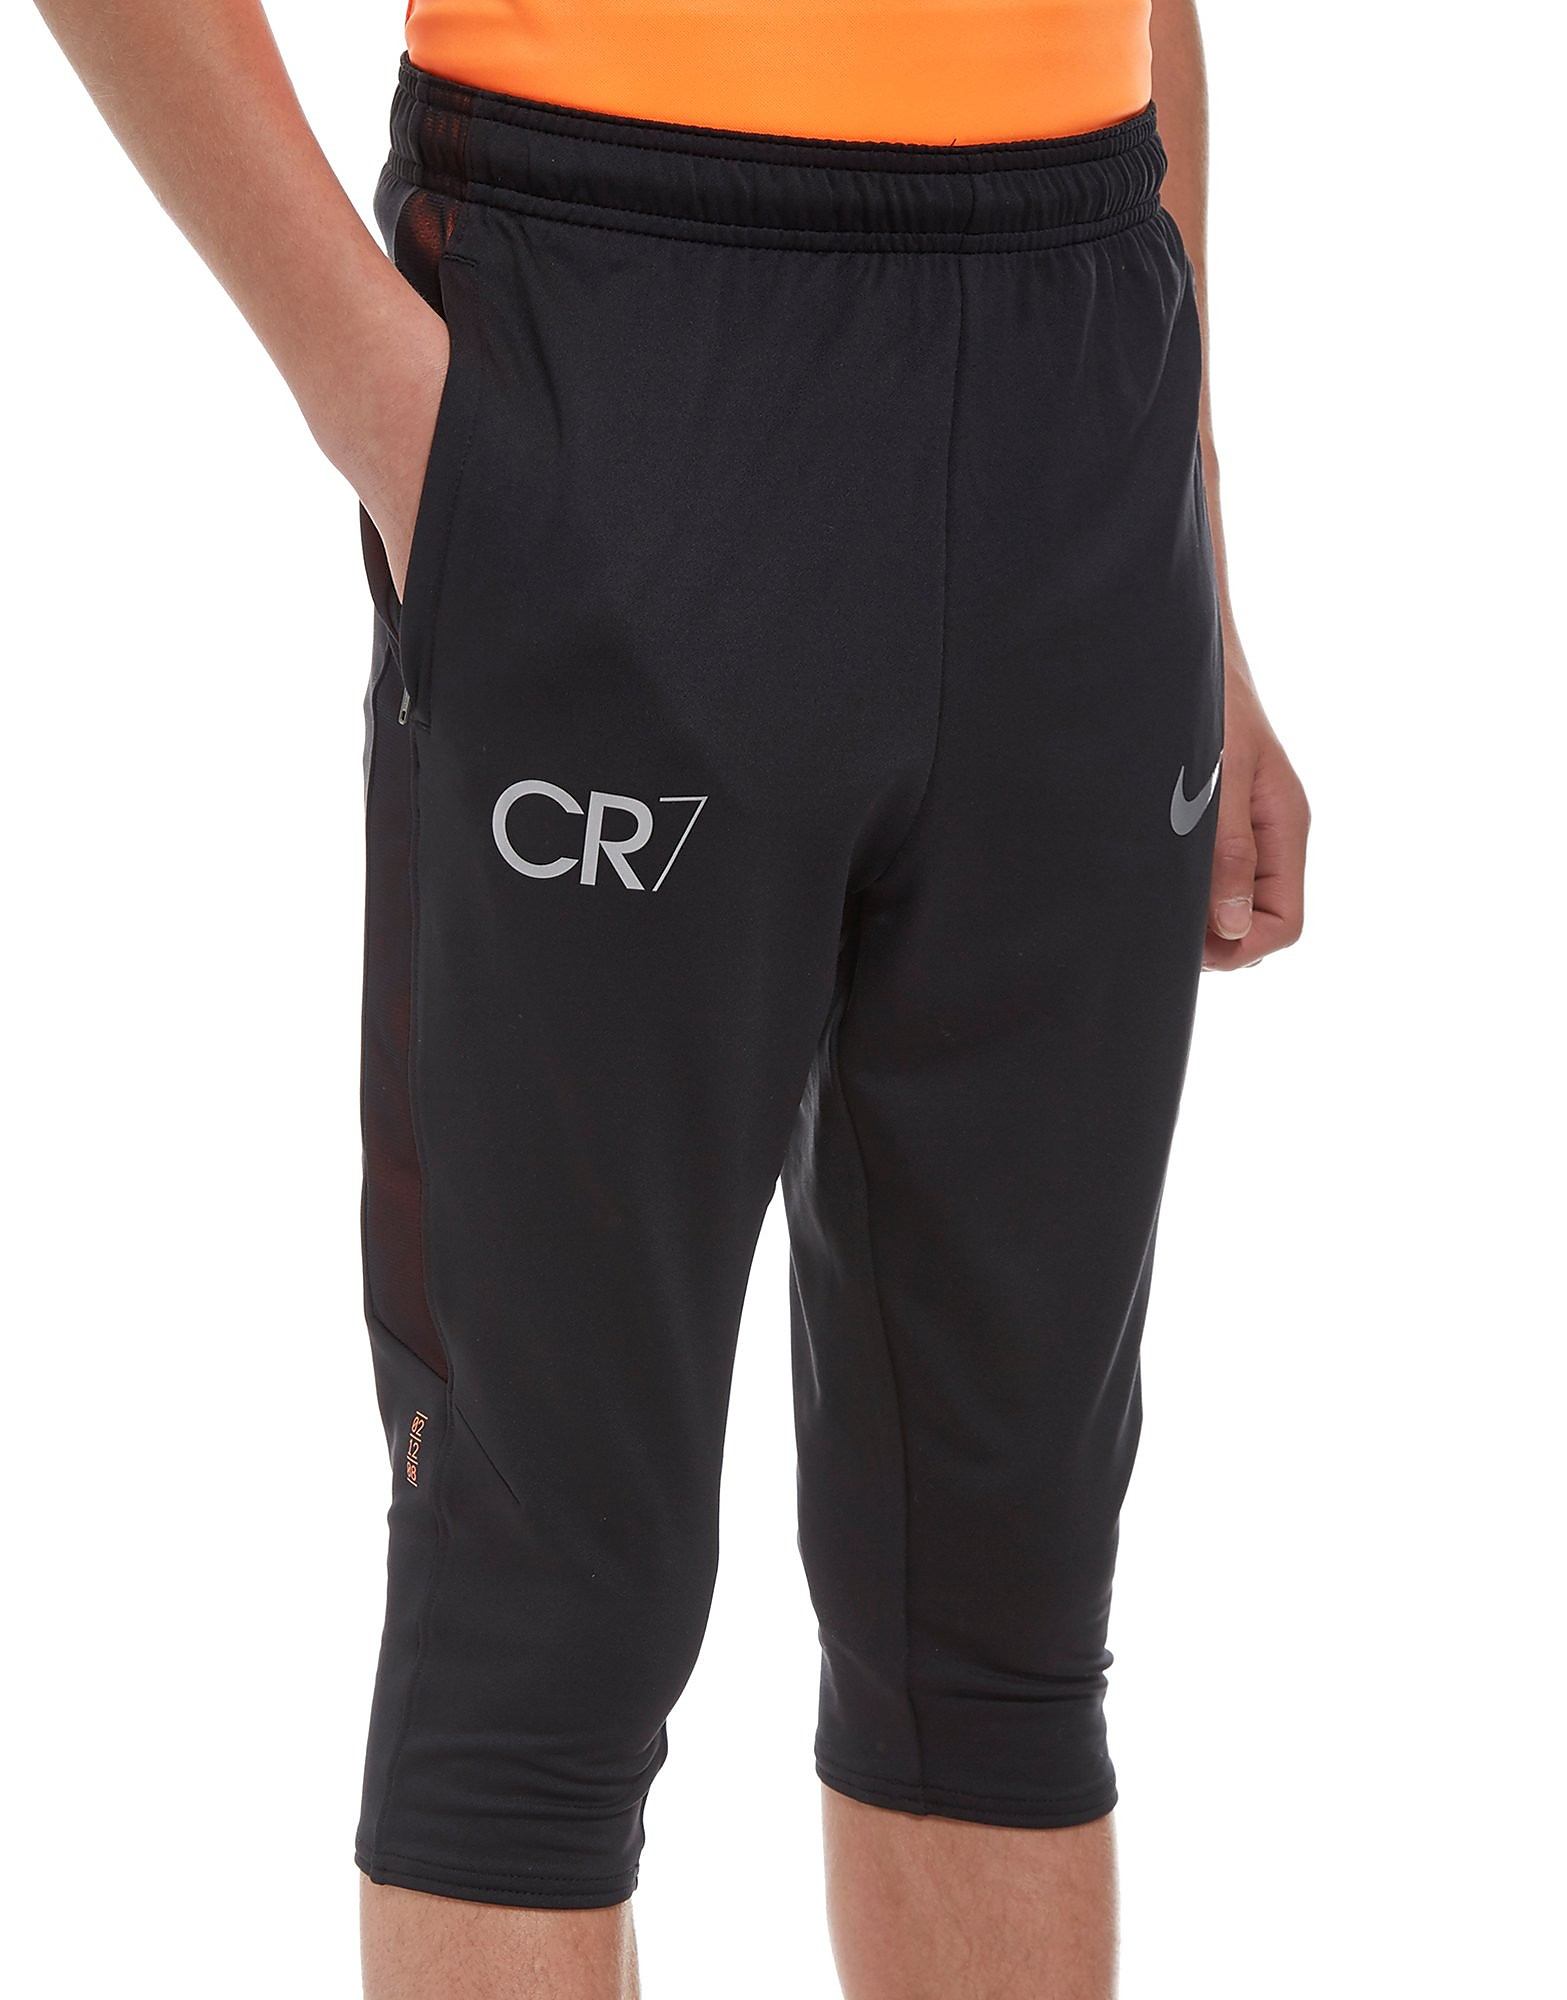 Nike Dry CR7 Squad Crop Pants Junior